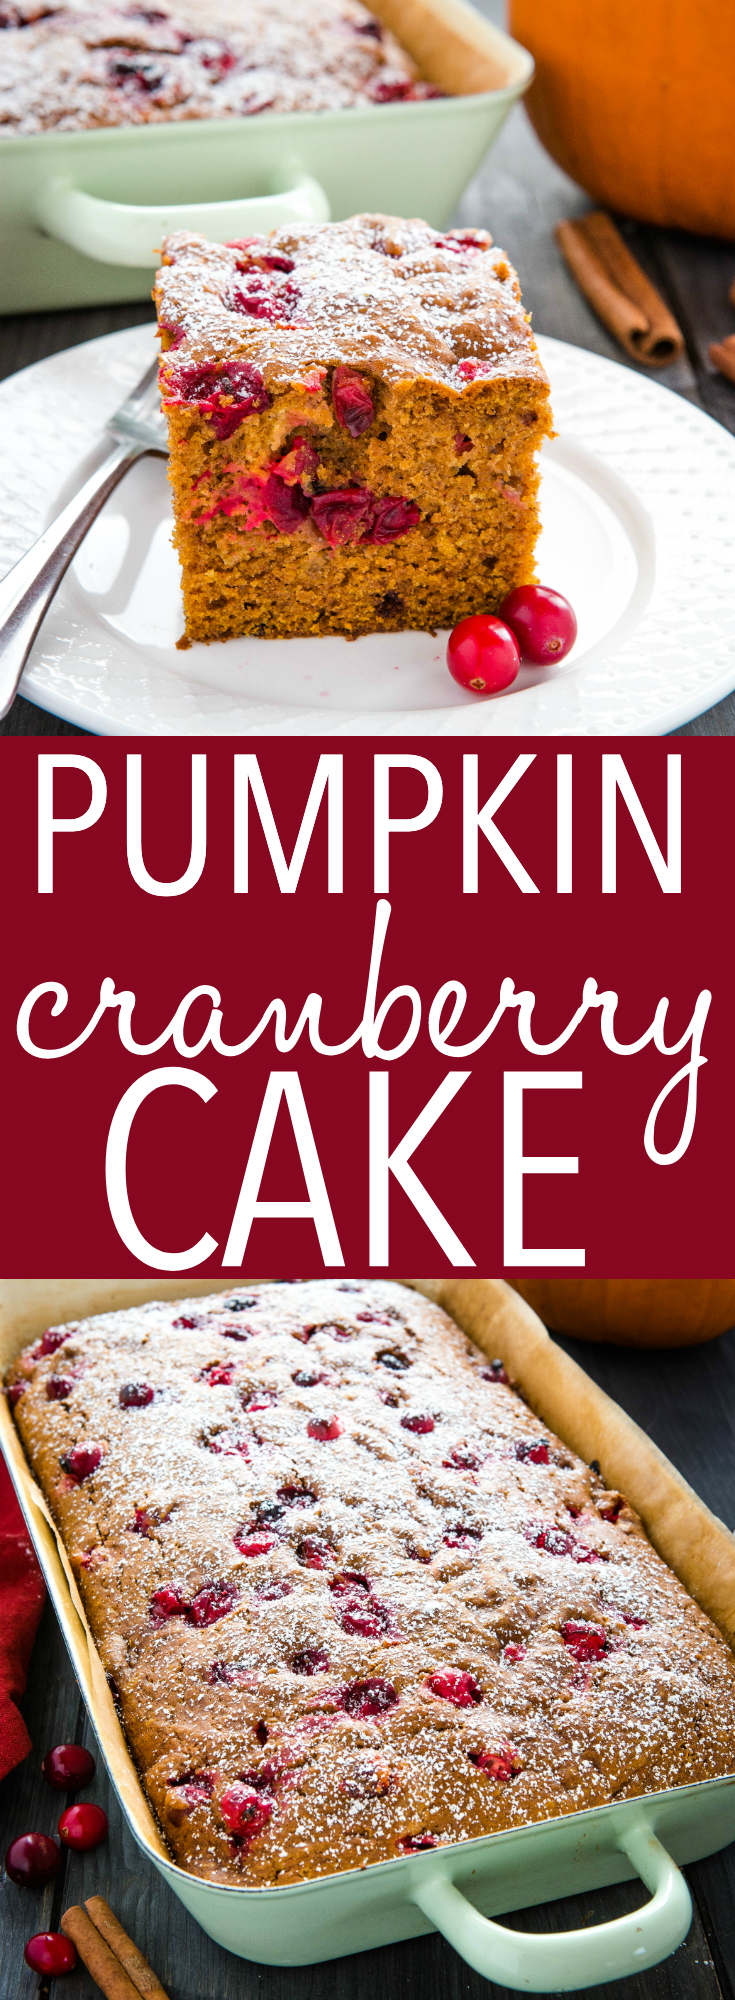 This Easy Pumpkin Cranberry Cake is a perfect easy fall & winter dessert! An easy one-bowl pumpkin cake with fresh cranberries, dusted with powdered sugar! Recipe from thebusybaker.ca! #christmas #pumpkin #thanksgiving #cranberry #cranberries #fresh #dessert #sweet #cake #baking #baker #holidays #treat #family #tradition via @busybakerblog